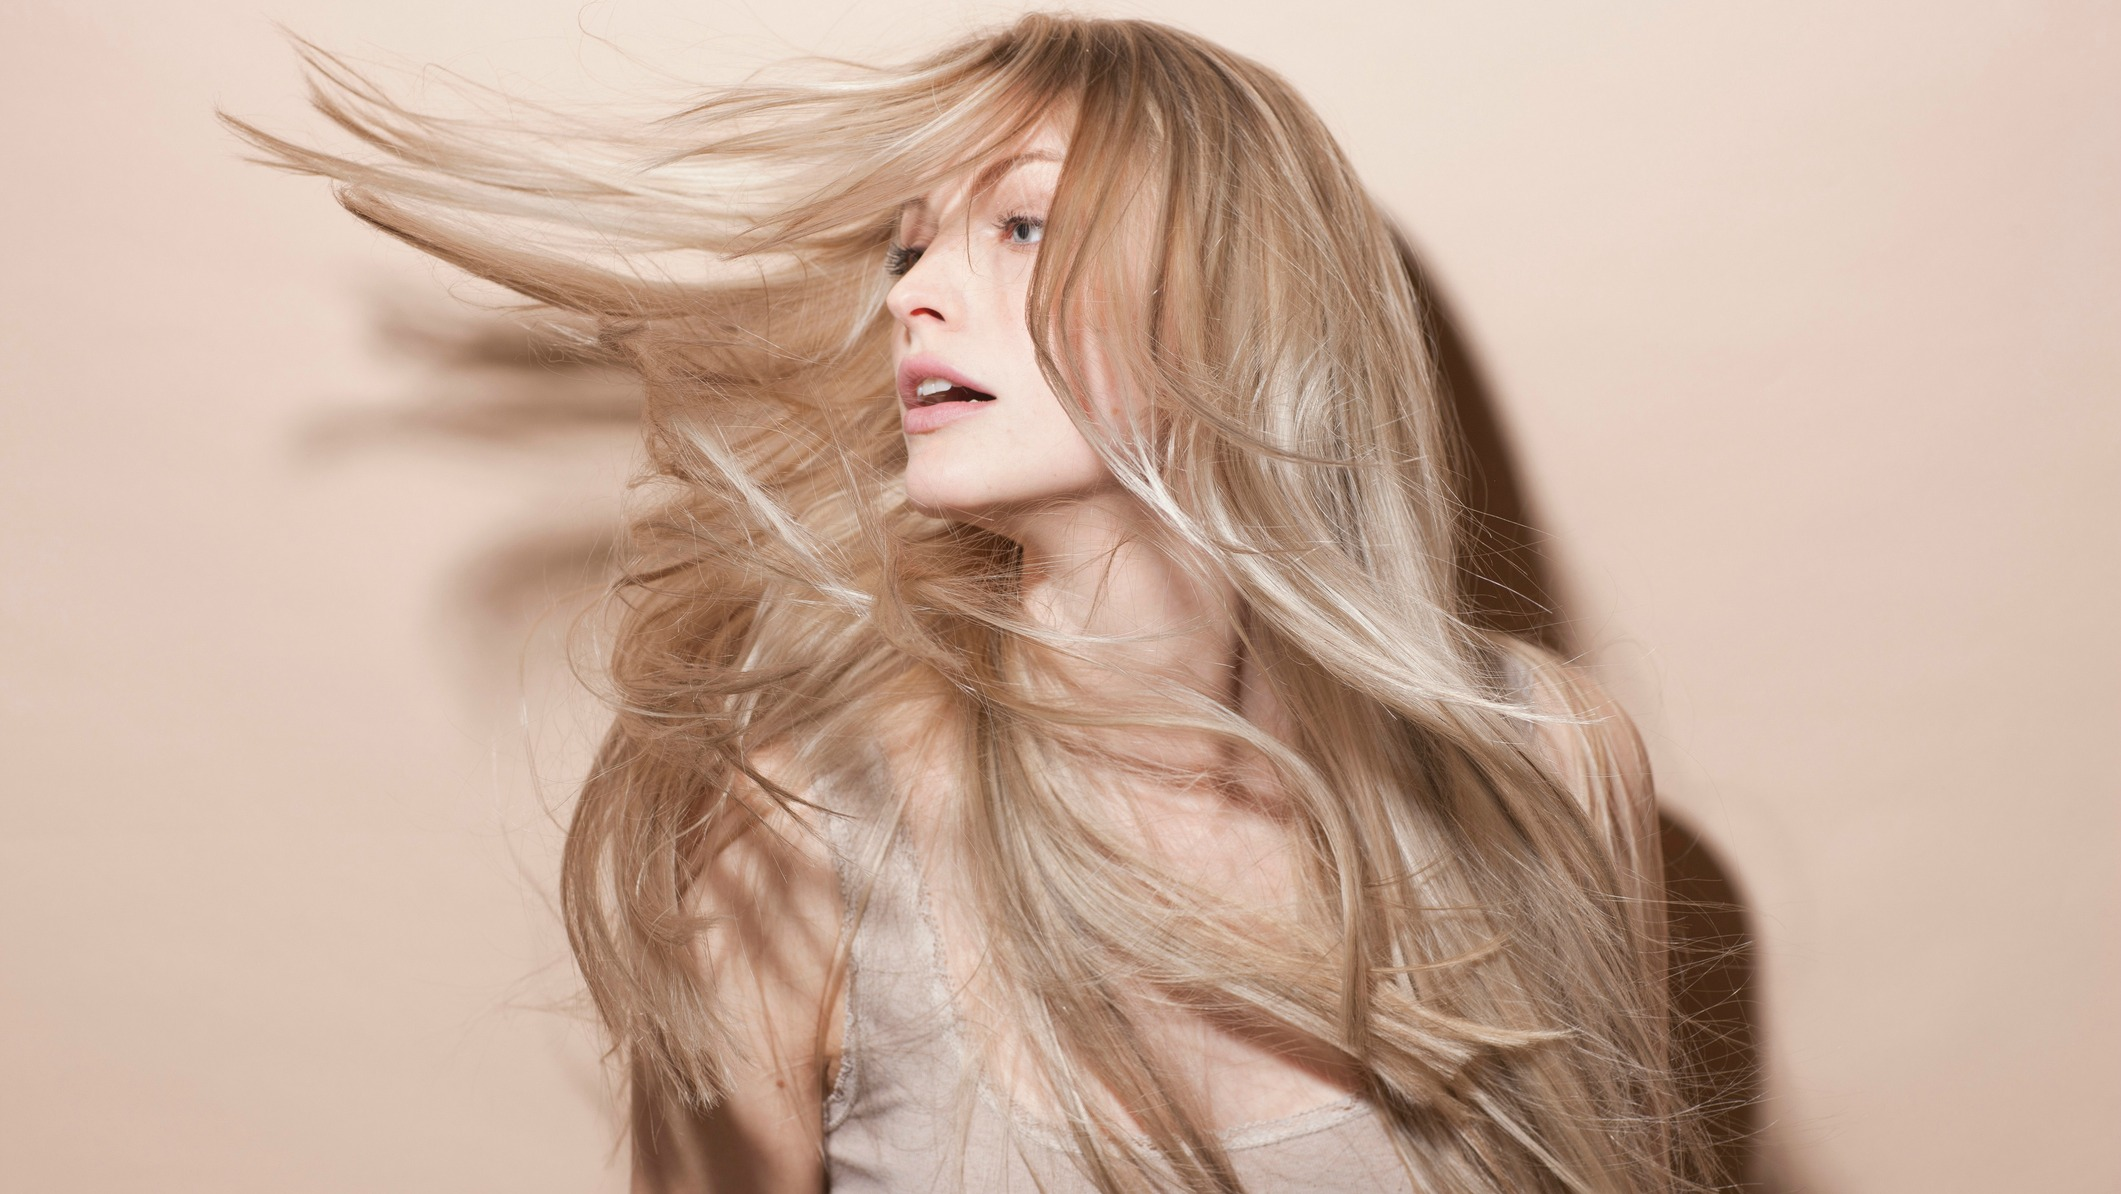 8 Foods That Could Help Your Hair Grow Faster